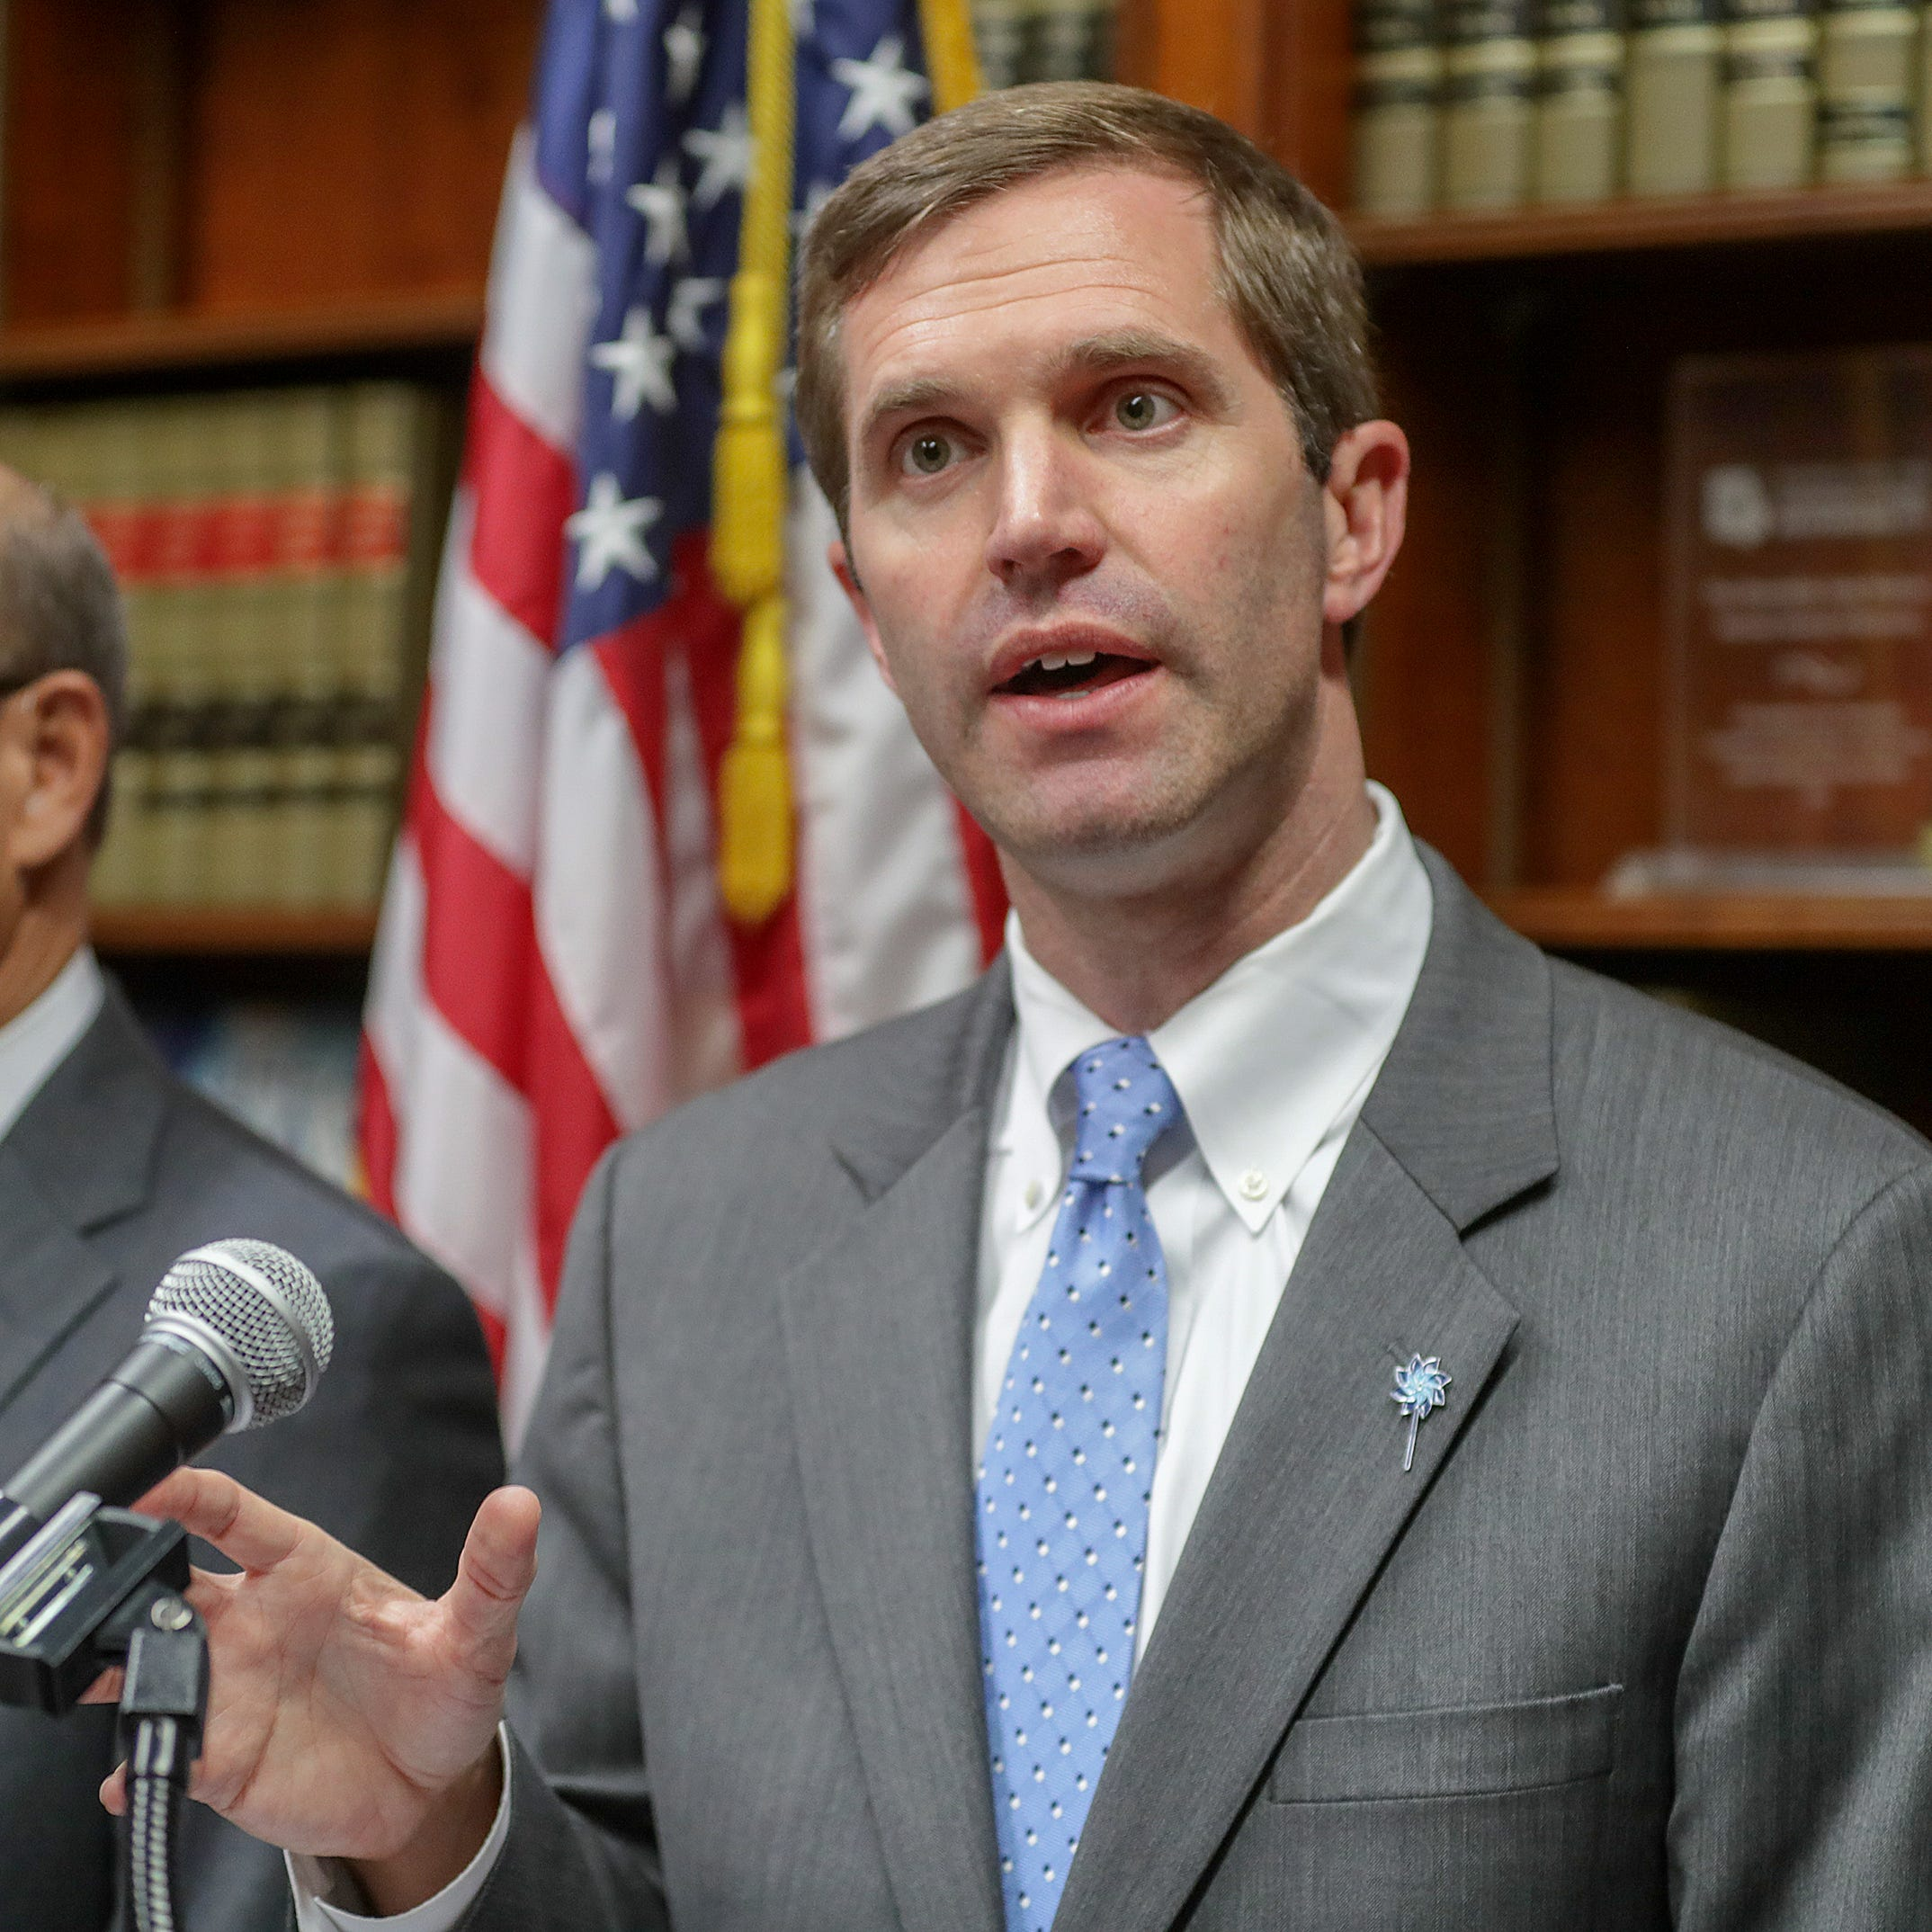 Kentucky Attorney General Andy Beshear speaks with the media after a Kentucky Supreme Court ruling that overturned Governor Matt Bevin's pension reform bill.